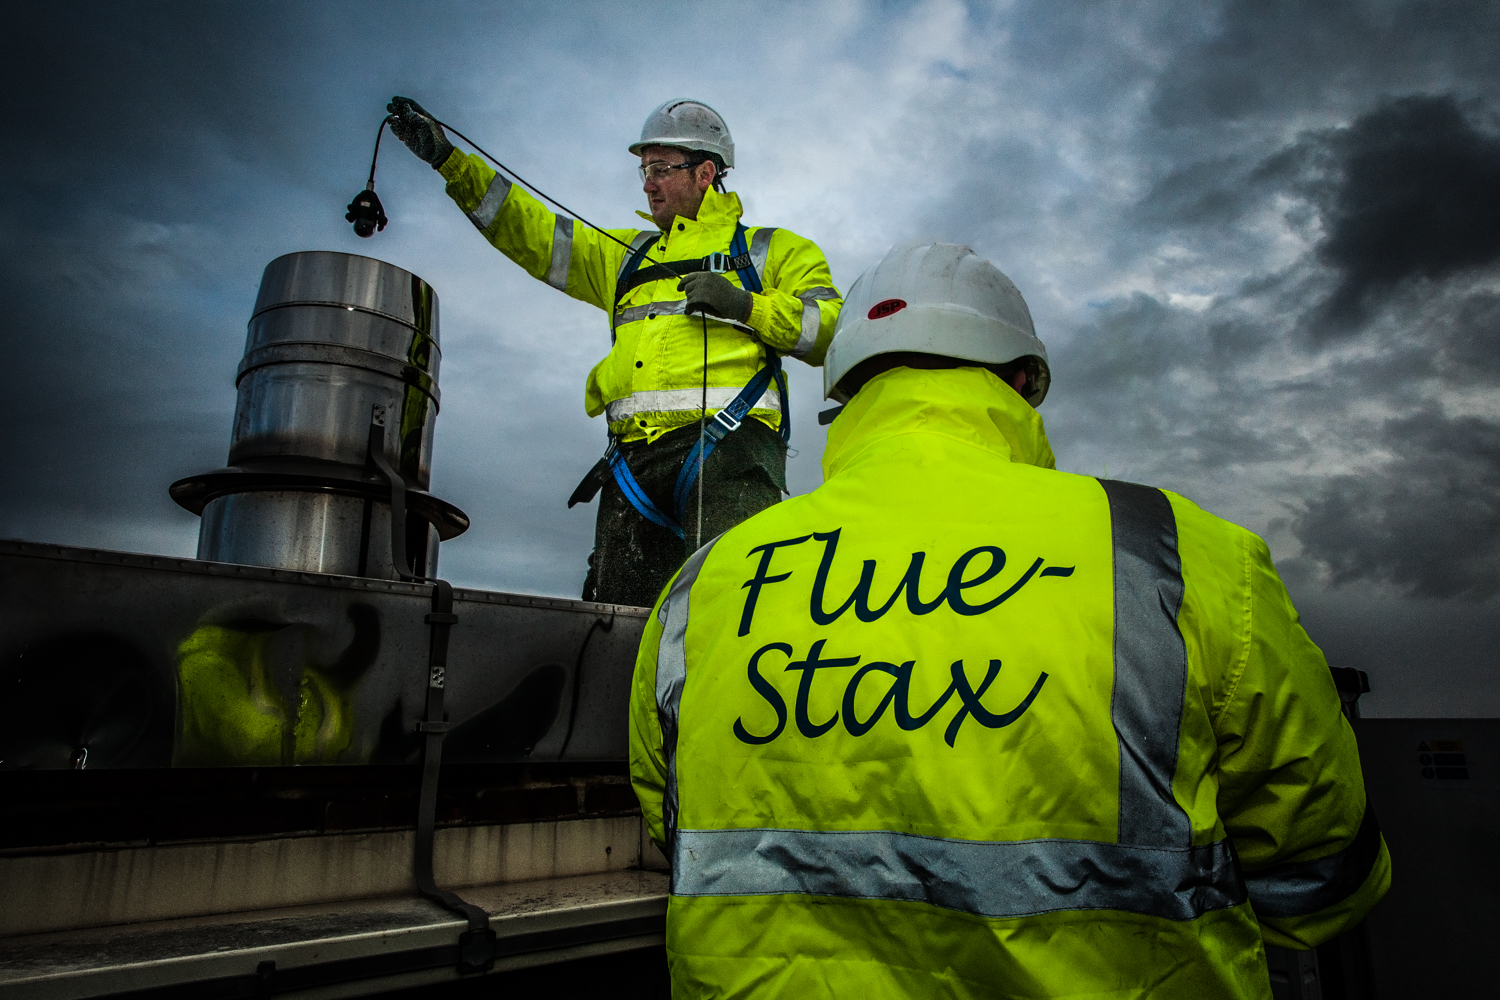 Fluestax, Premier Inn, Bournemouth, by Rick McEvoy Industrial photographer